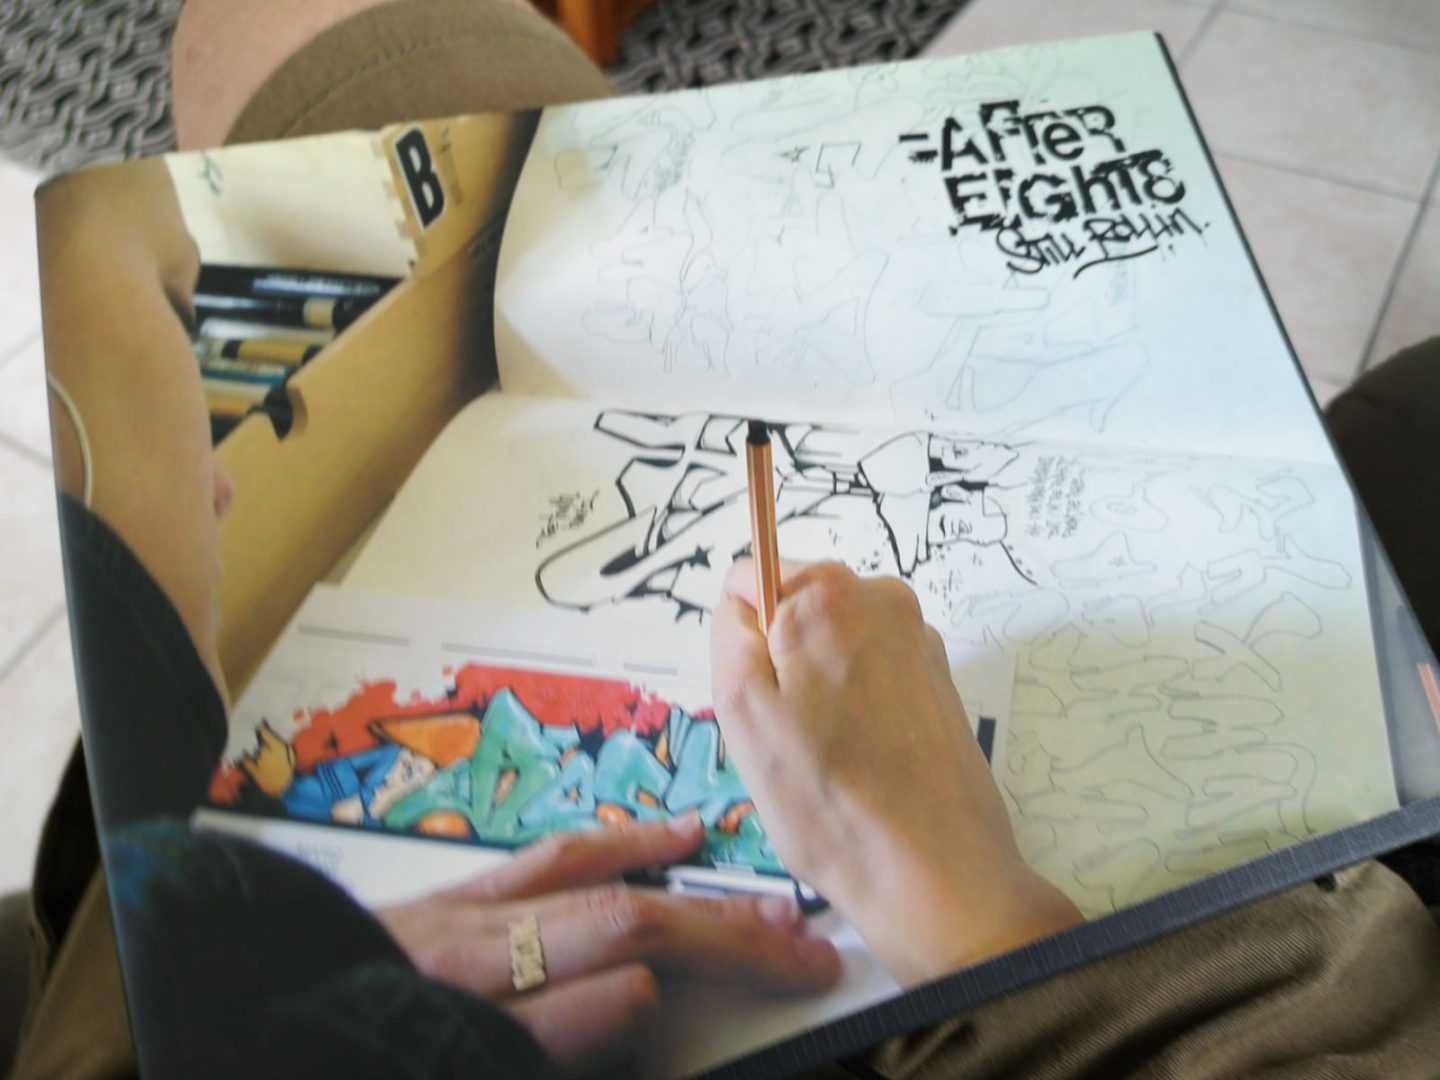 After_Eight_8 book cover with graffiti art